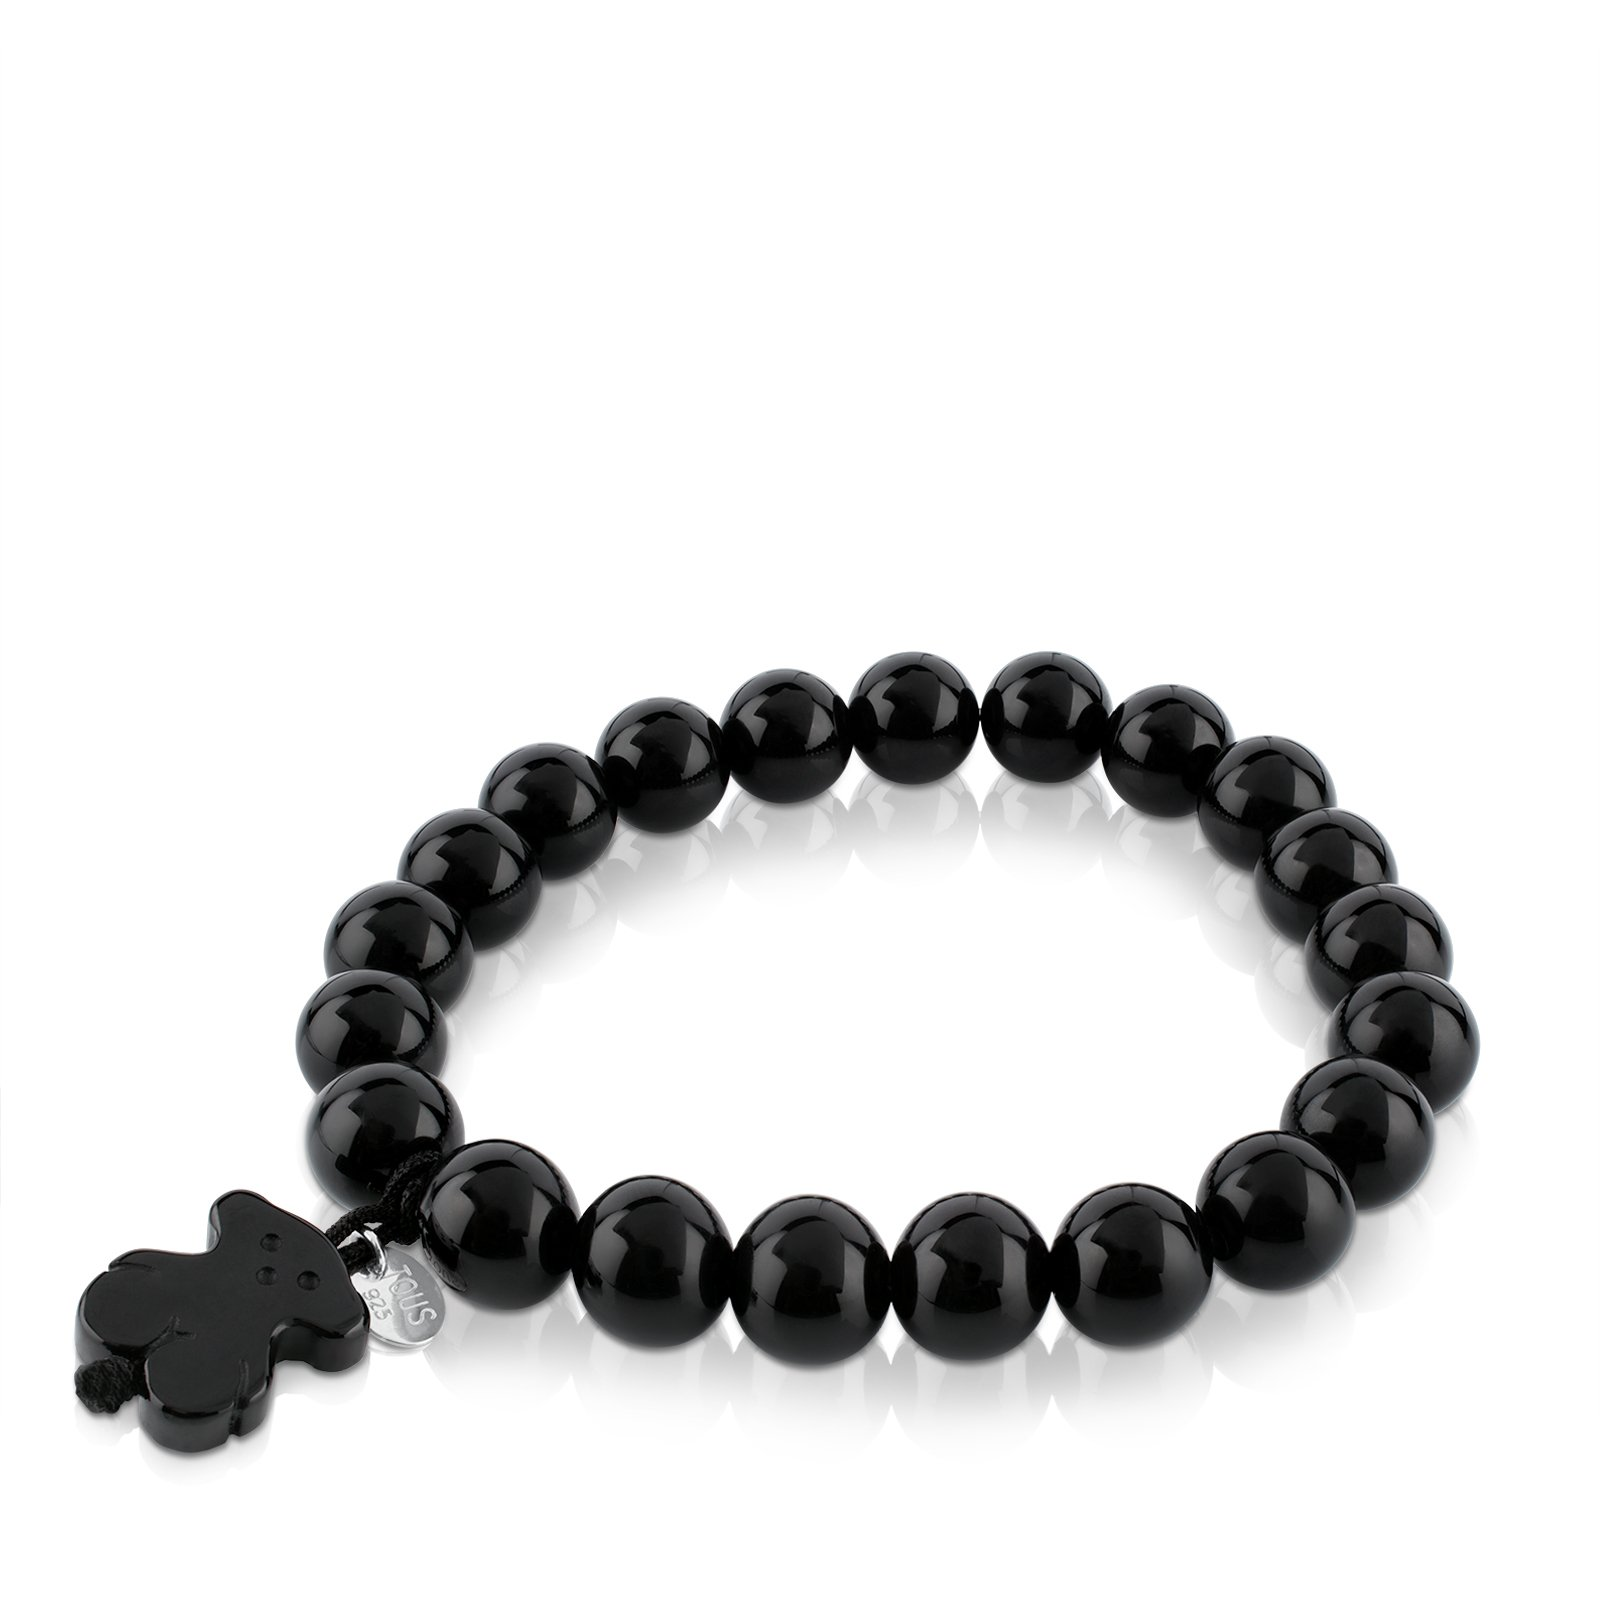 TOUS Jewelry ''Icon Black and White'' Agate with Bear Black Stretch Bracelet by TOUS